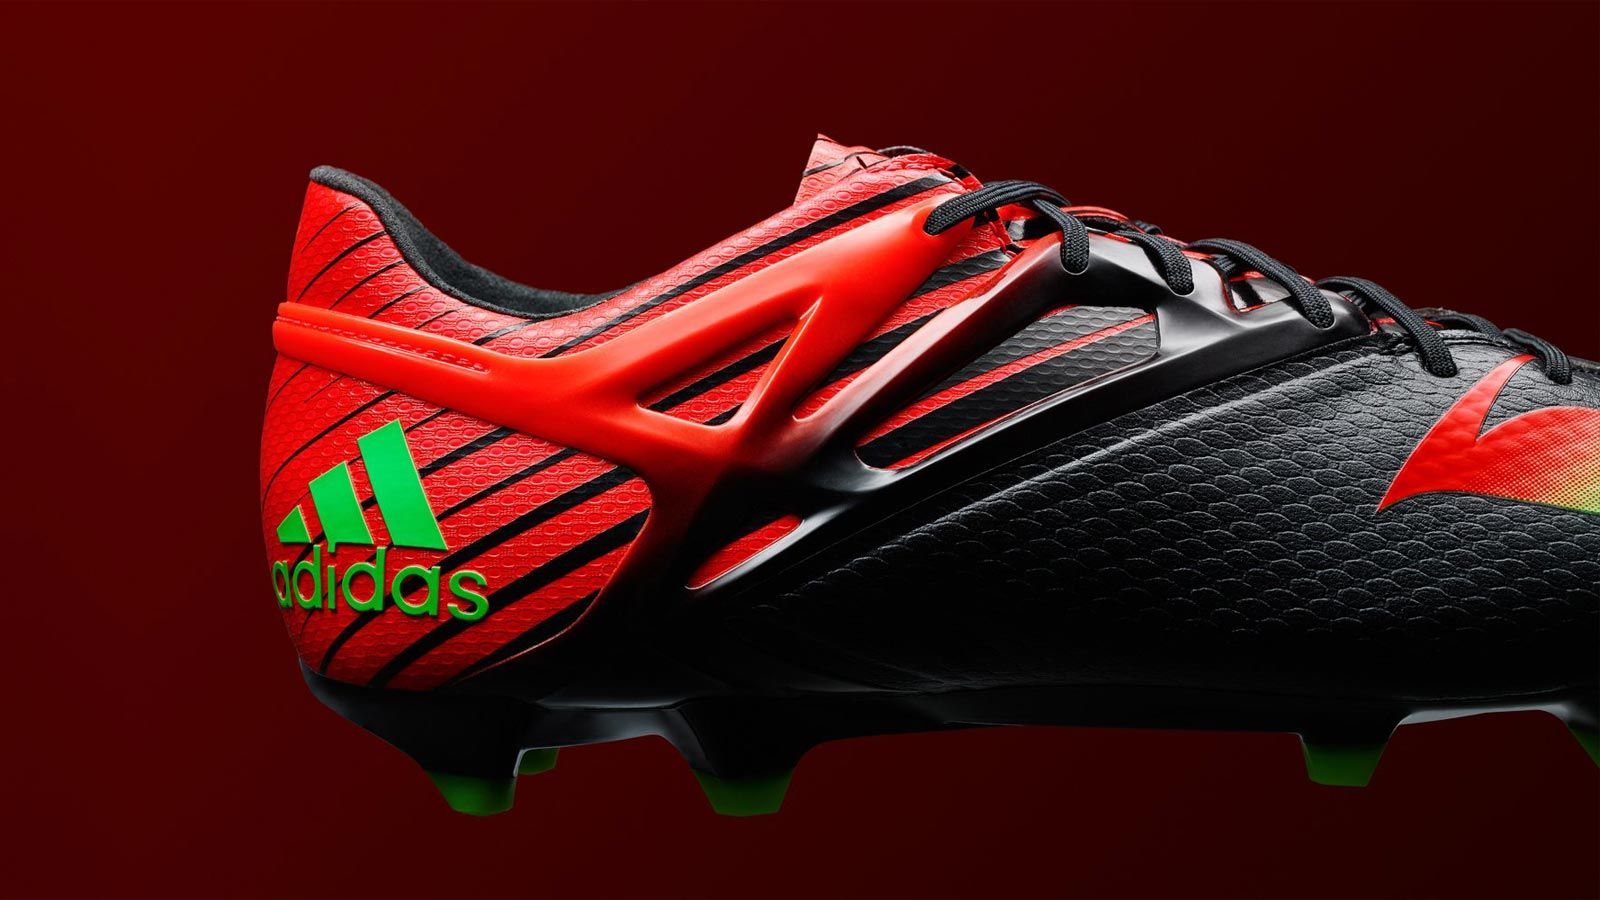 The new black   red Adidas Messi 2015-2016 Football Boot features an  extremely bold design. Leo Messi is set to wear the new Black   Solar Red    Green ... 618aba03efb2c